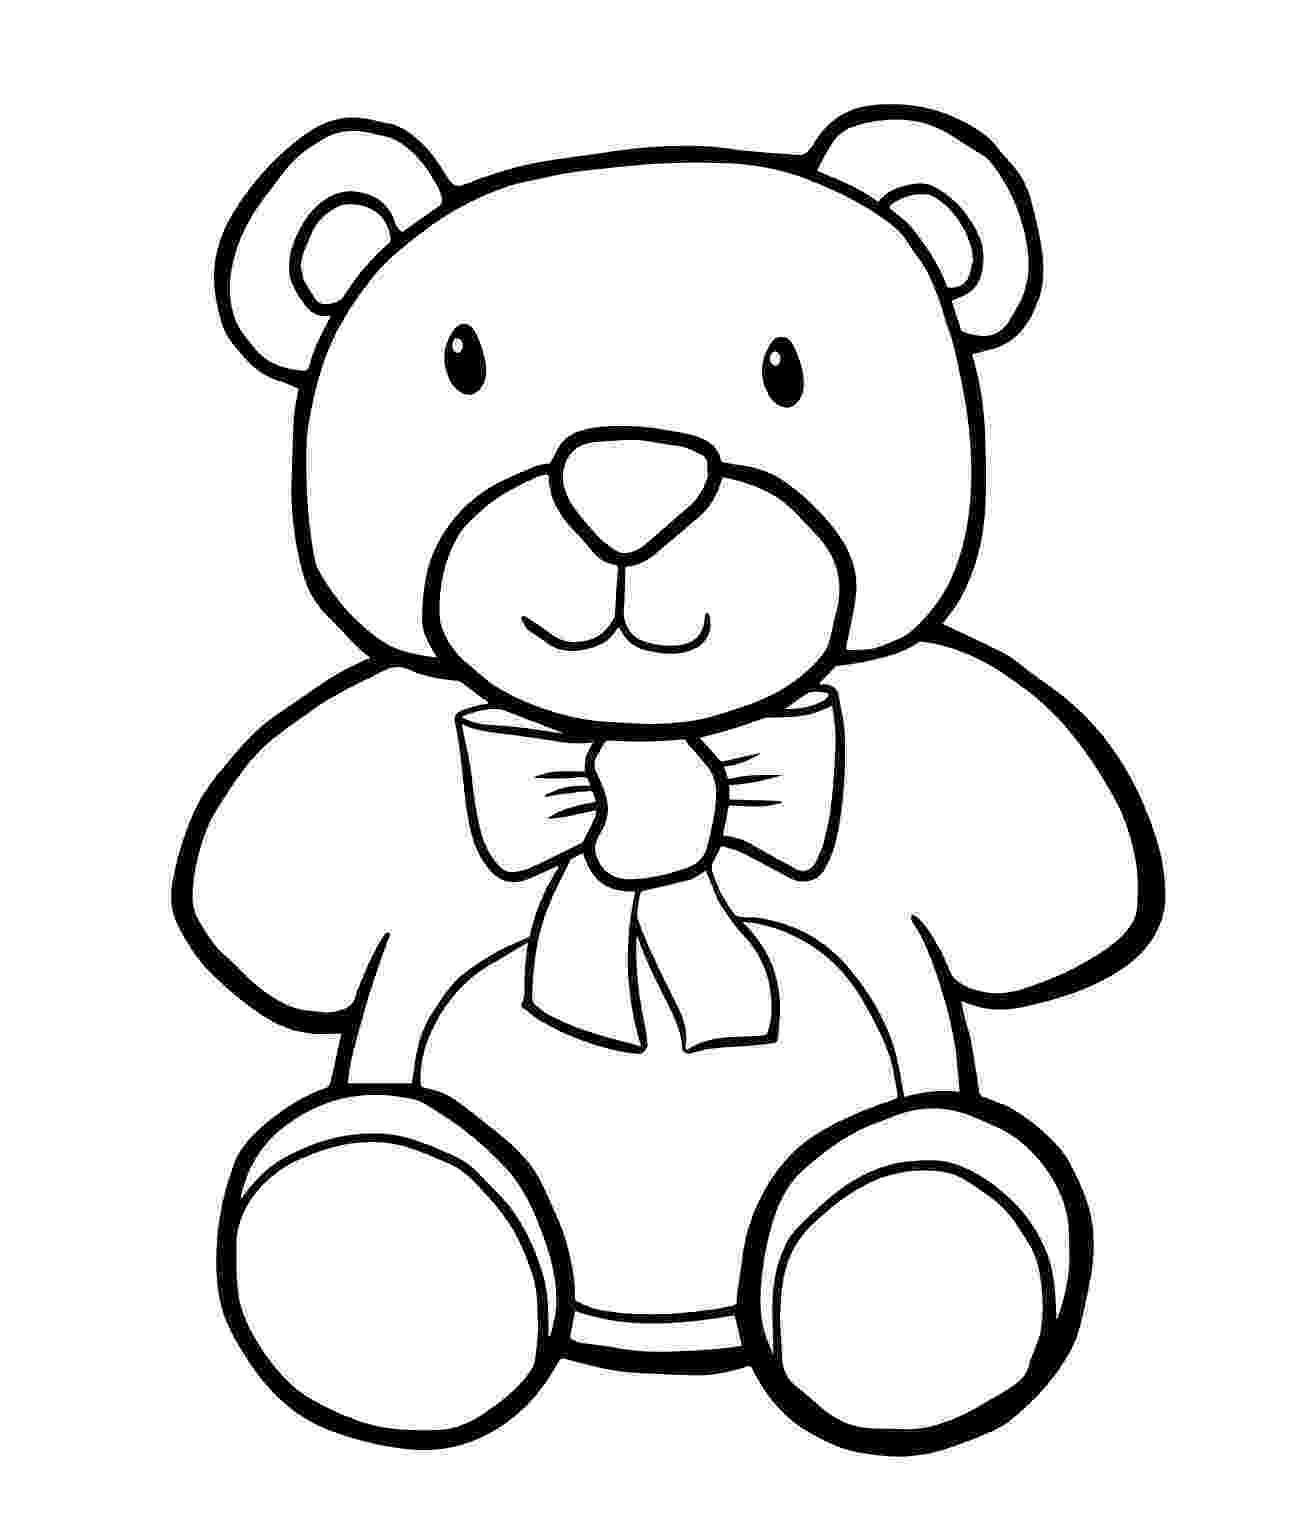 teddy bear coloring pictures free printable teddy bear coloring pages for kids bear pictures teddy coloring